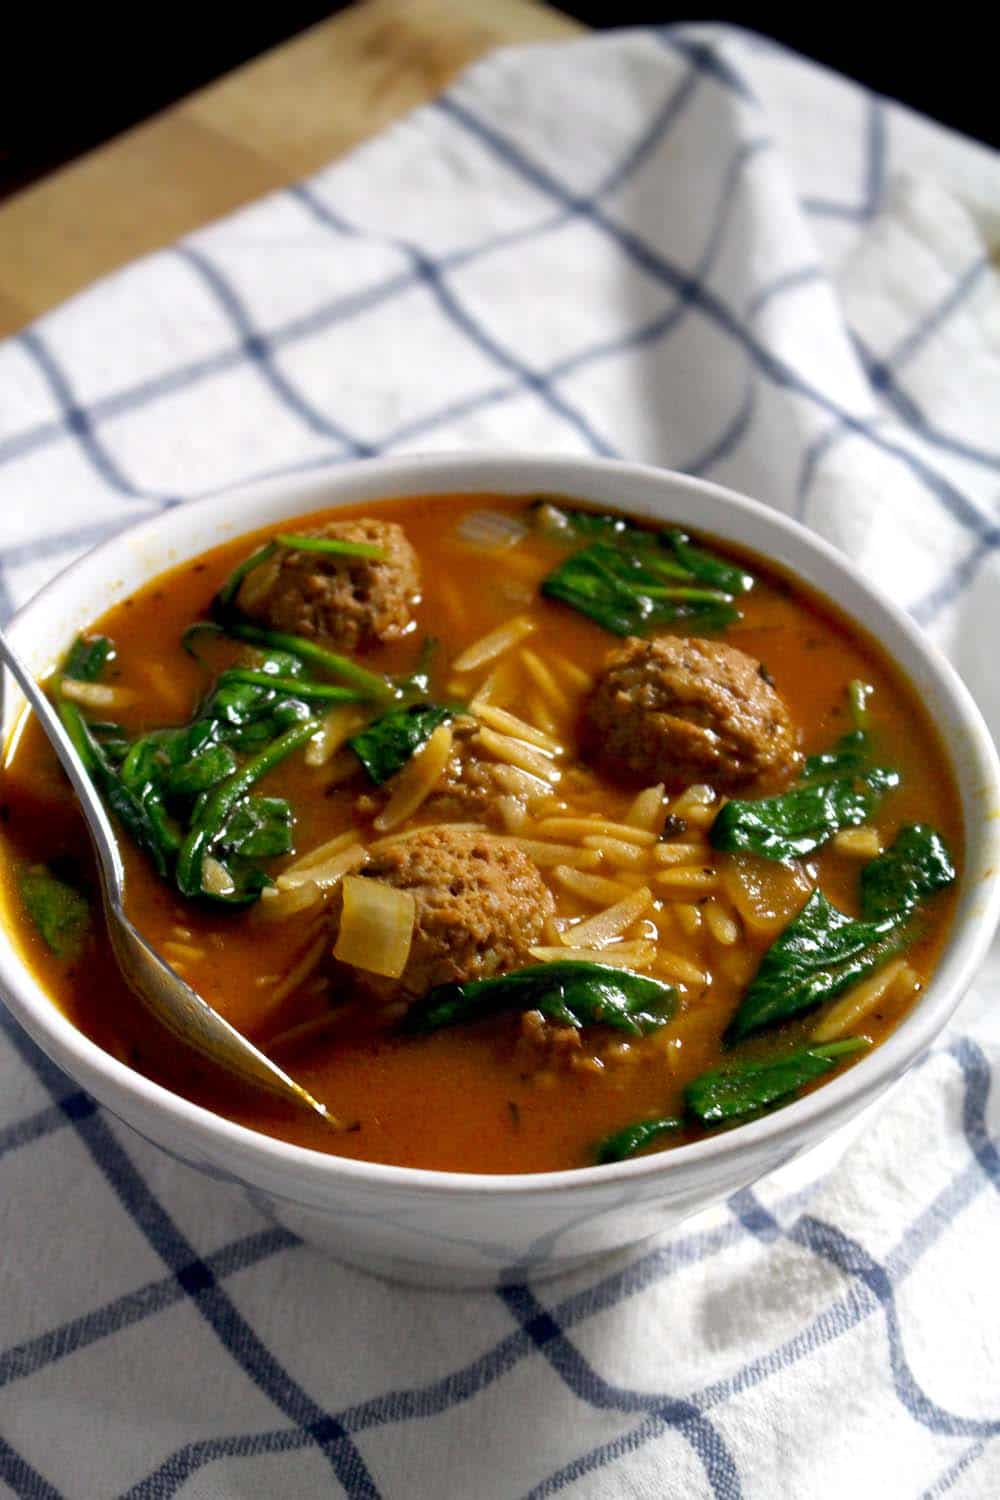 Bowl of soup with a reddish broth, orzo, spinach, and meatballs, with a spoon perched on the edge, on a blue and white checkered cloth.